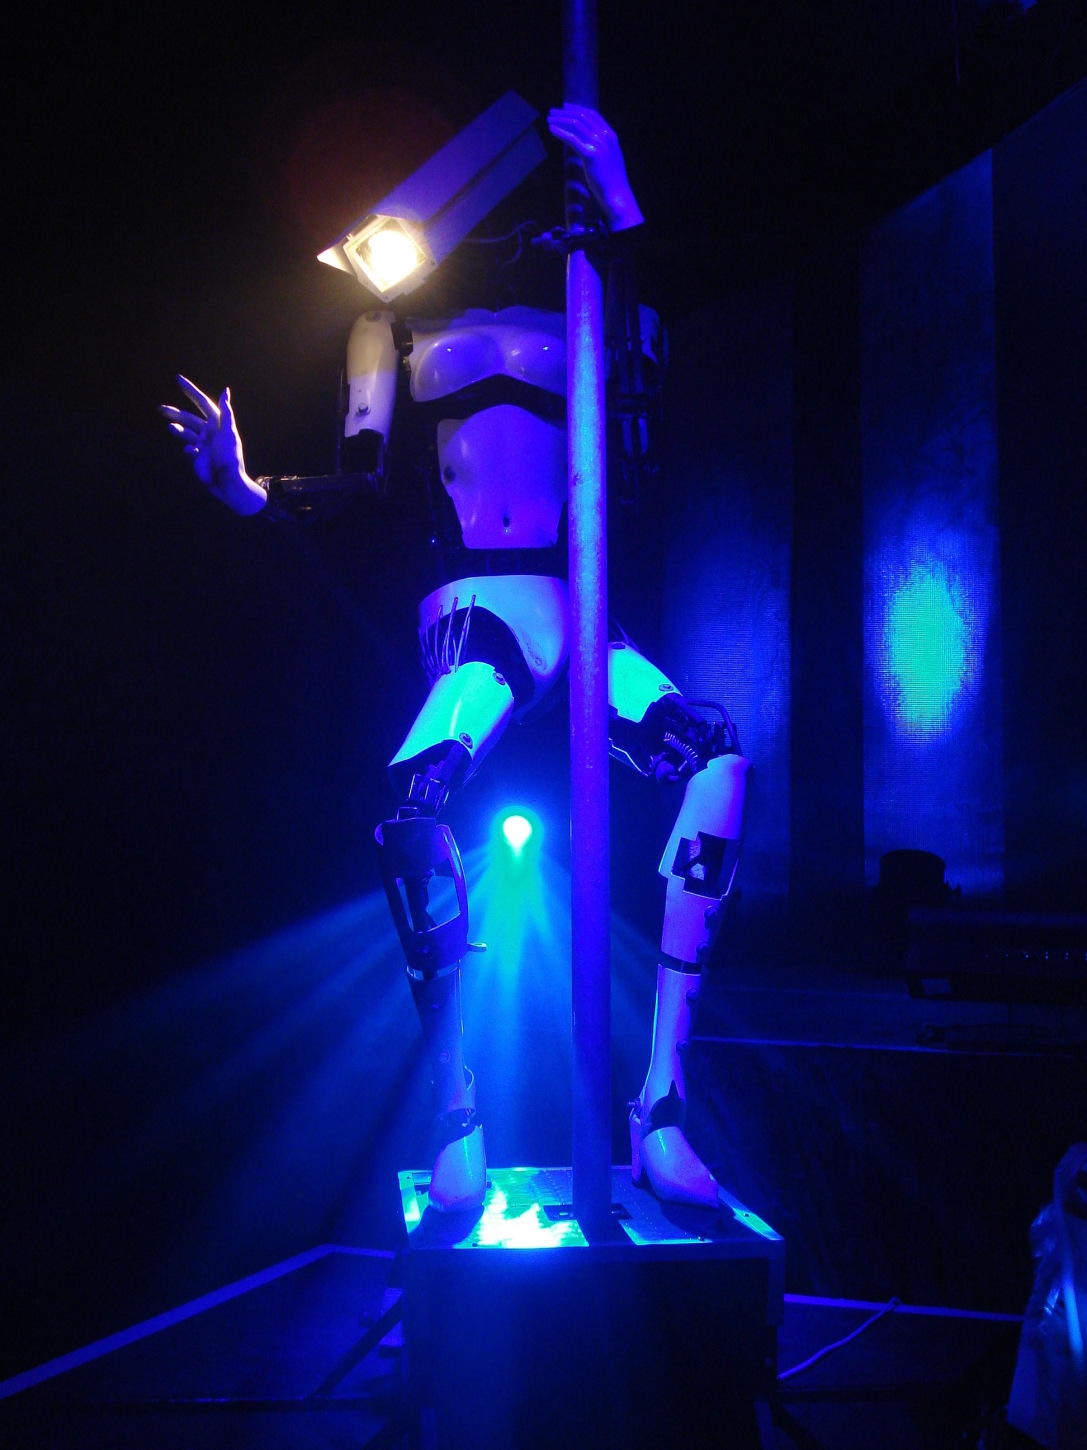 Giles Walker - Pole-dancing Robots